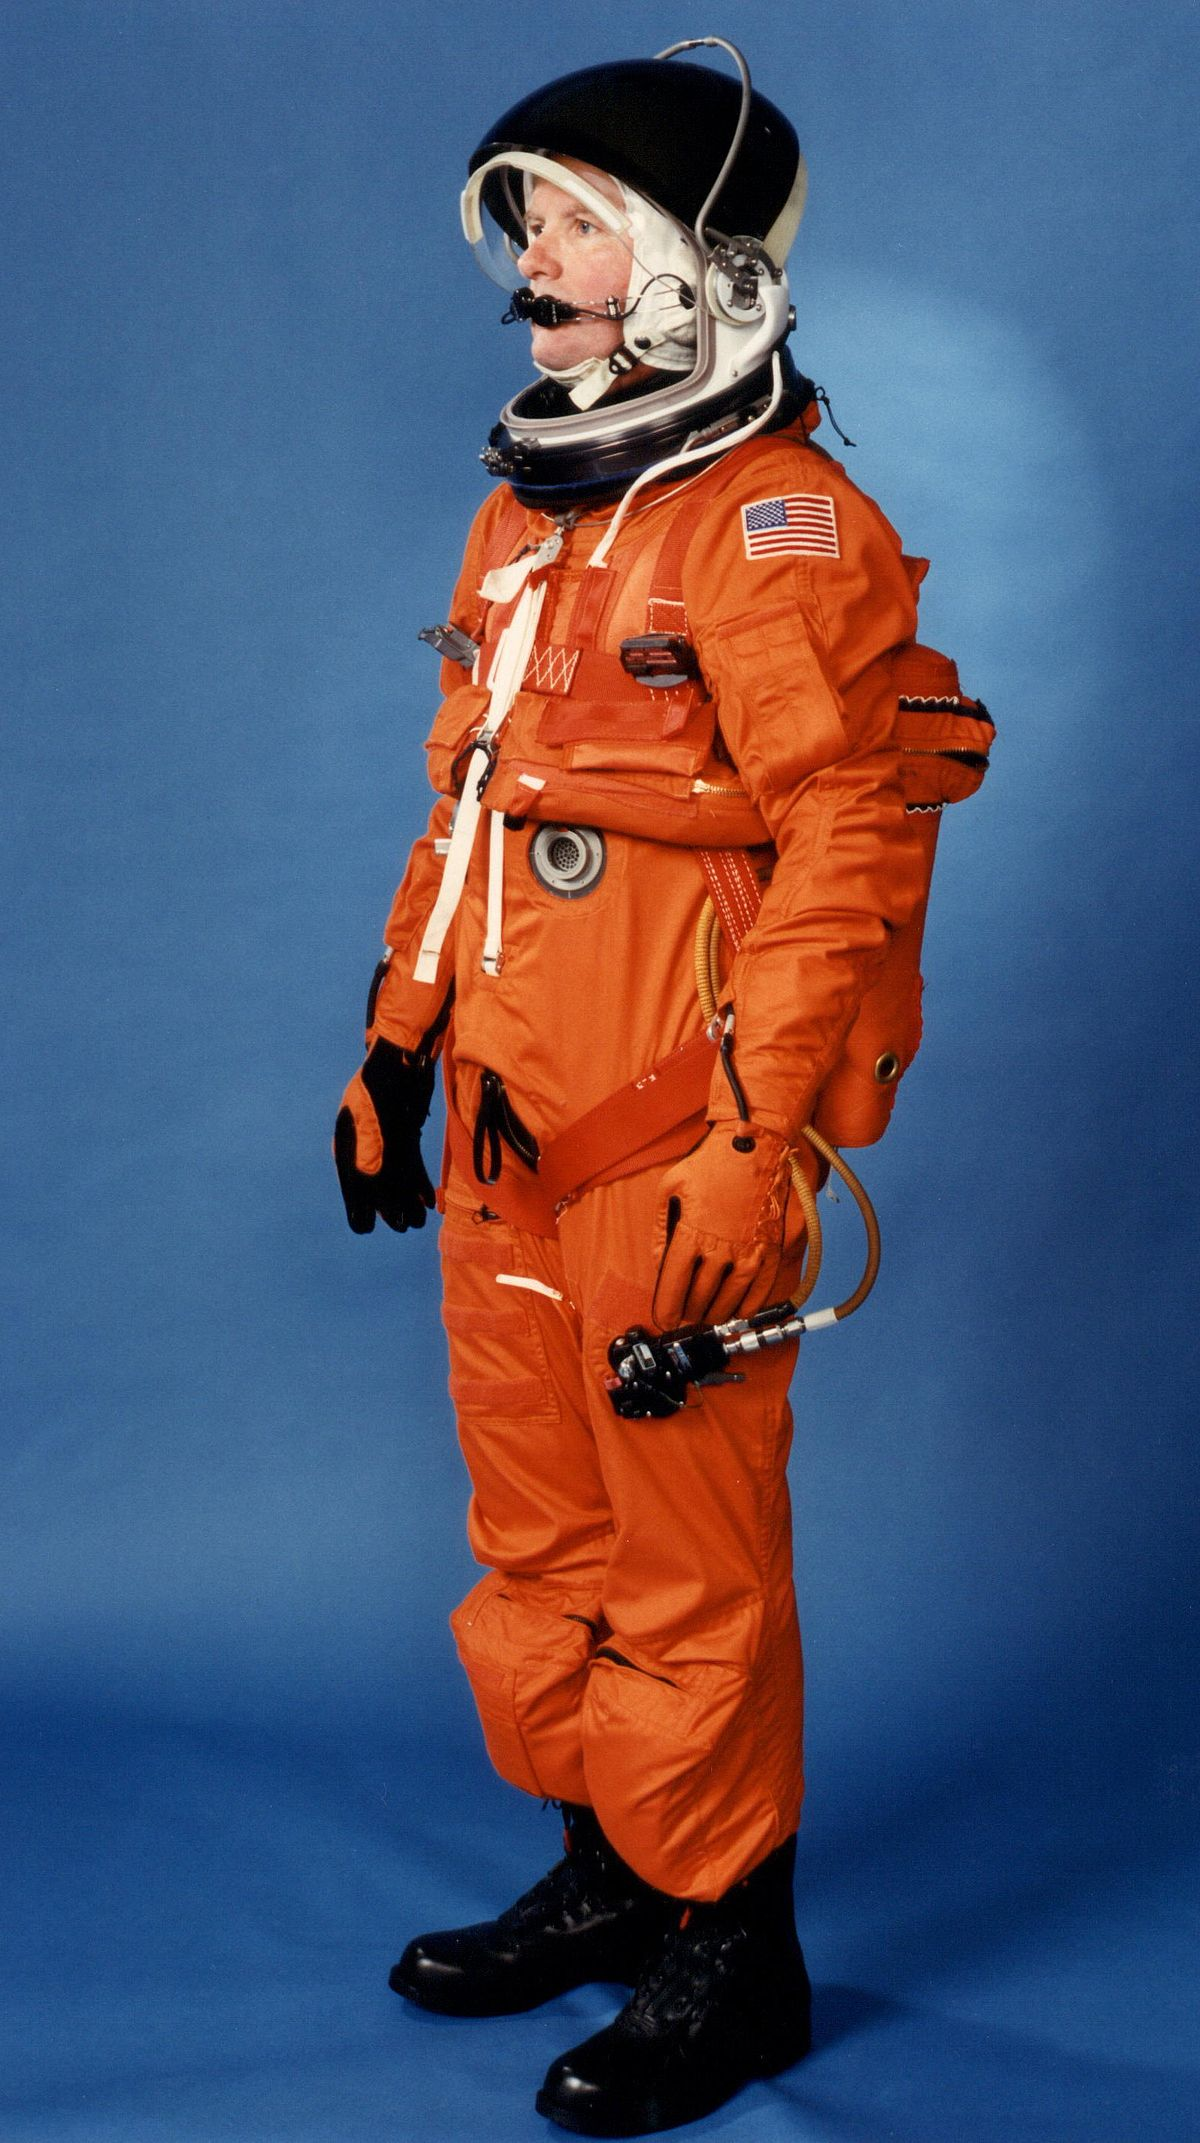 astronaut space suit - photo #22